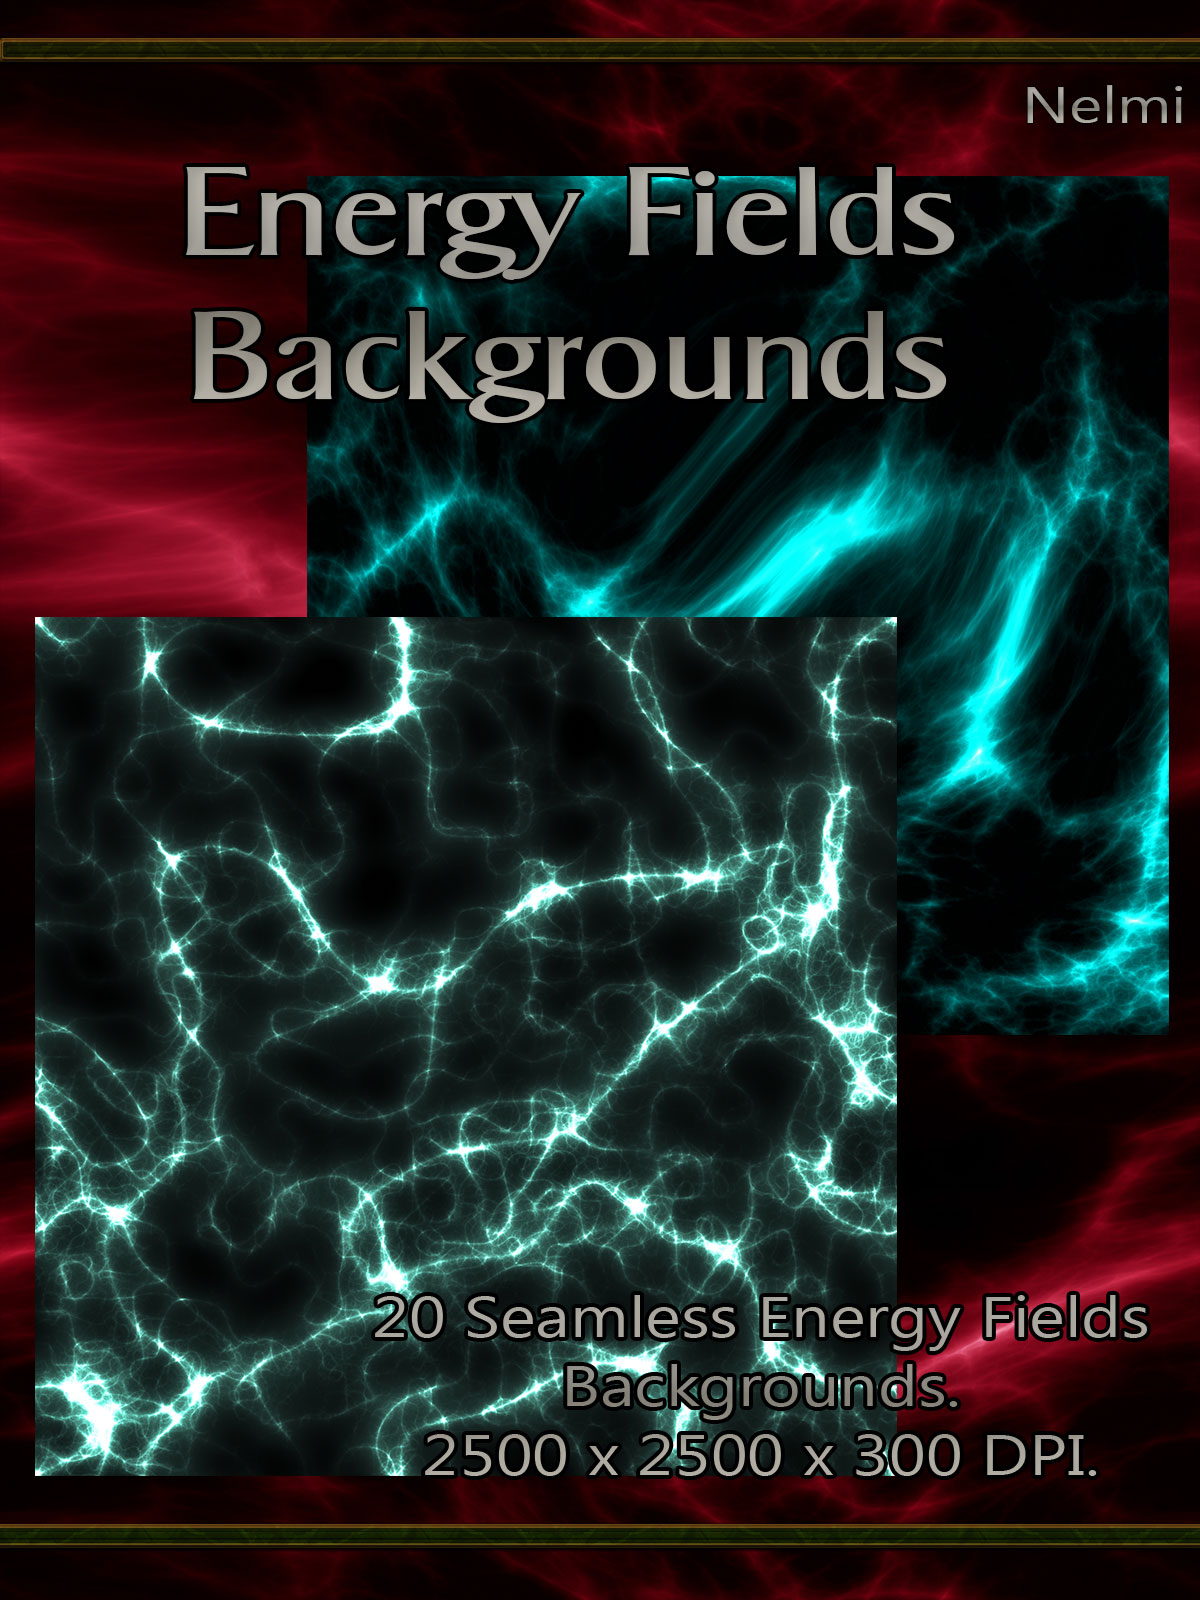 20 Seamless Energy Fields Backgrounds